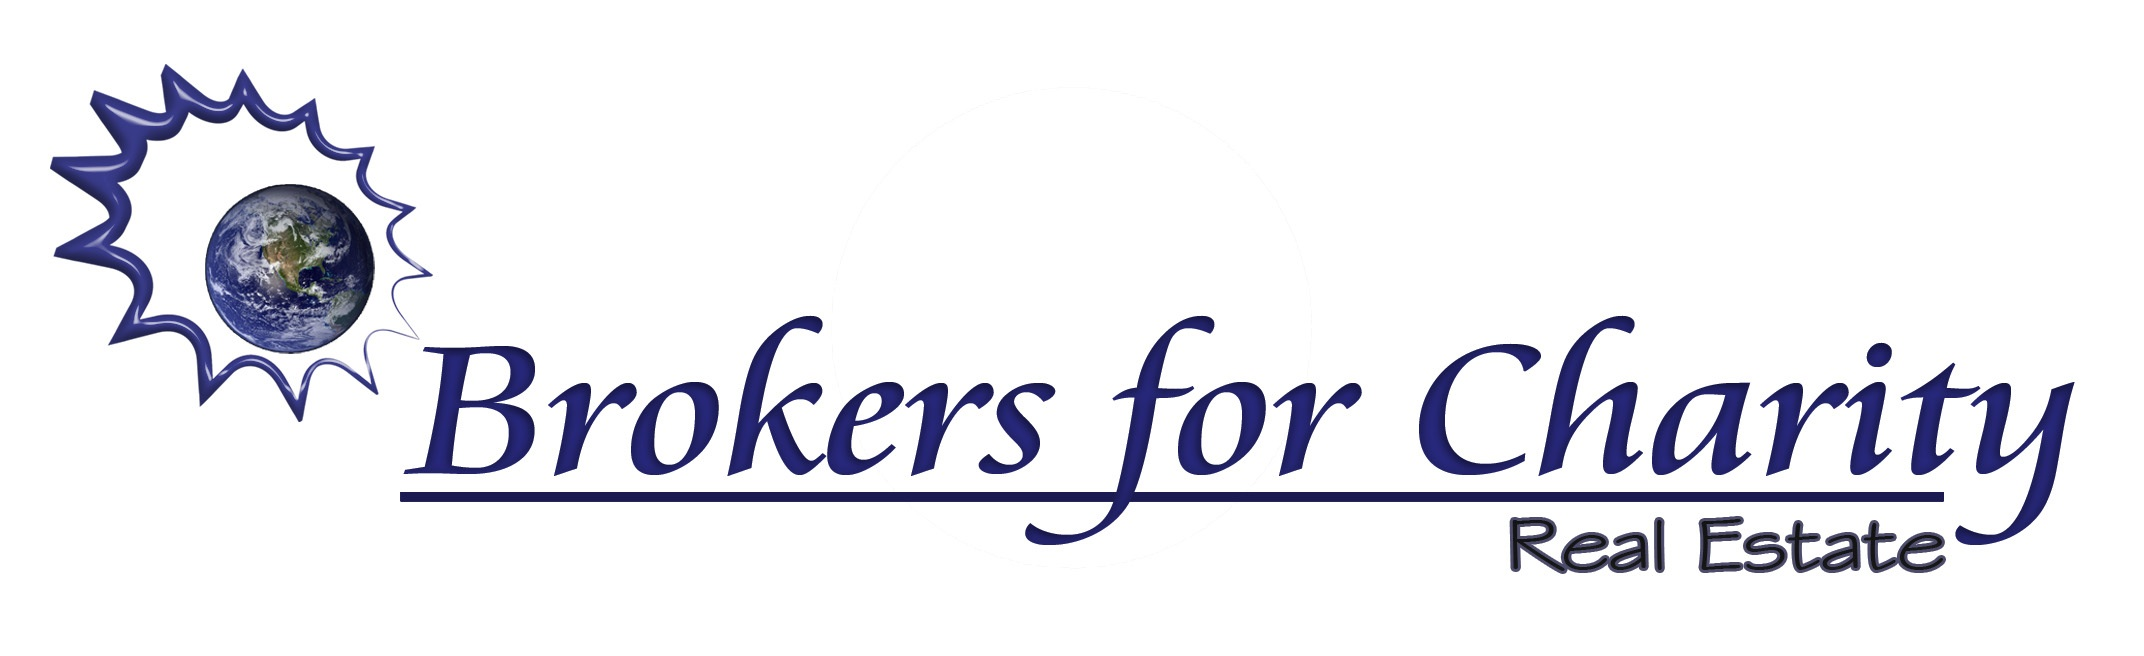 Web Image: 2011 Brokers for Charity Logo